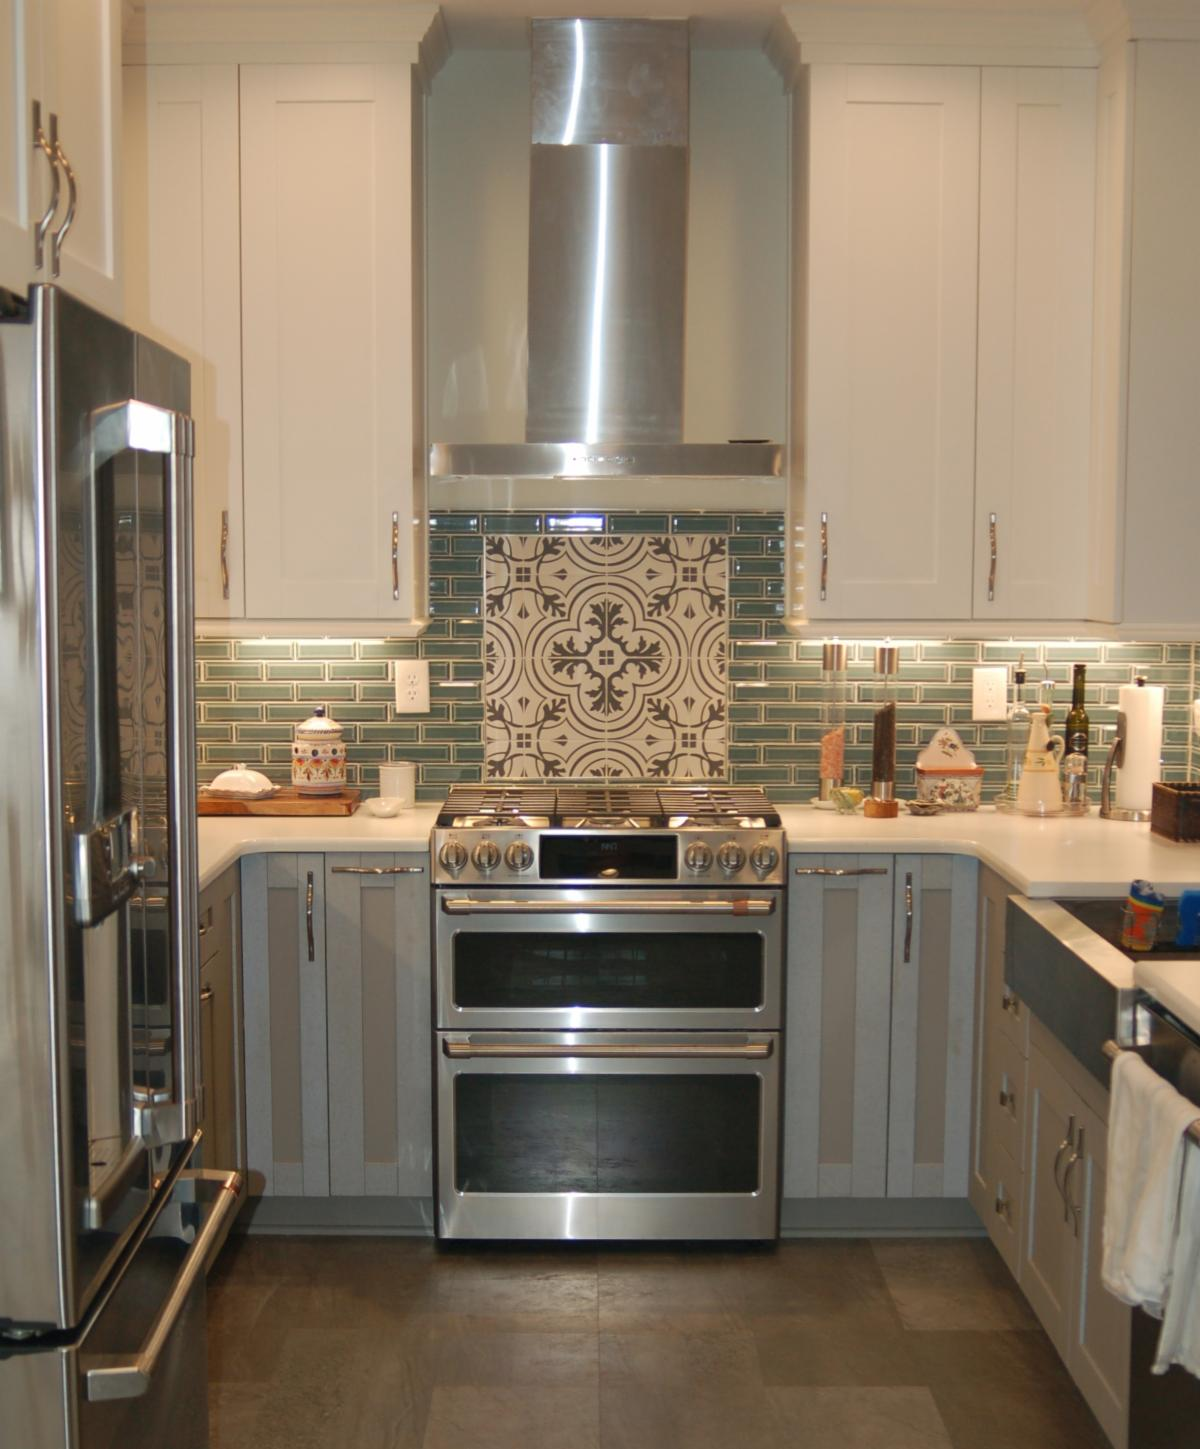 Spangler Kitchen Remodel Tile Backsplash